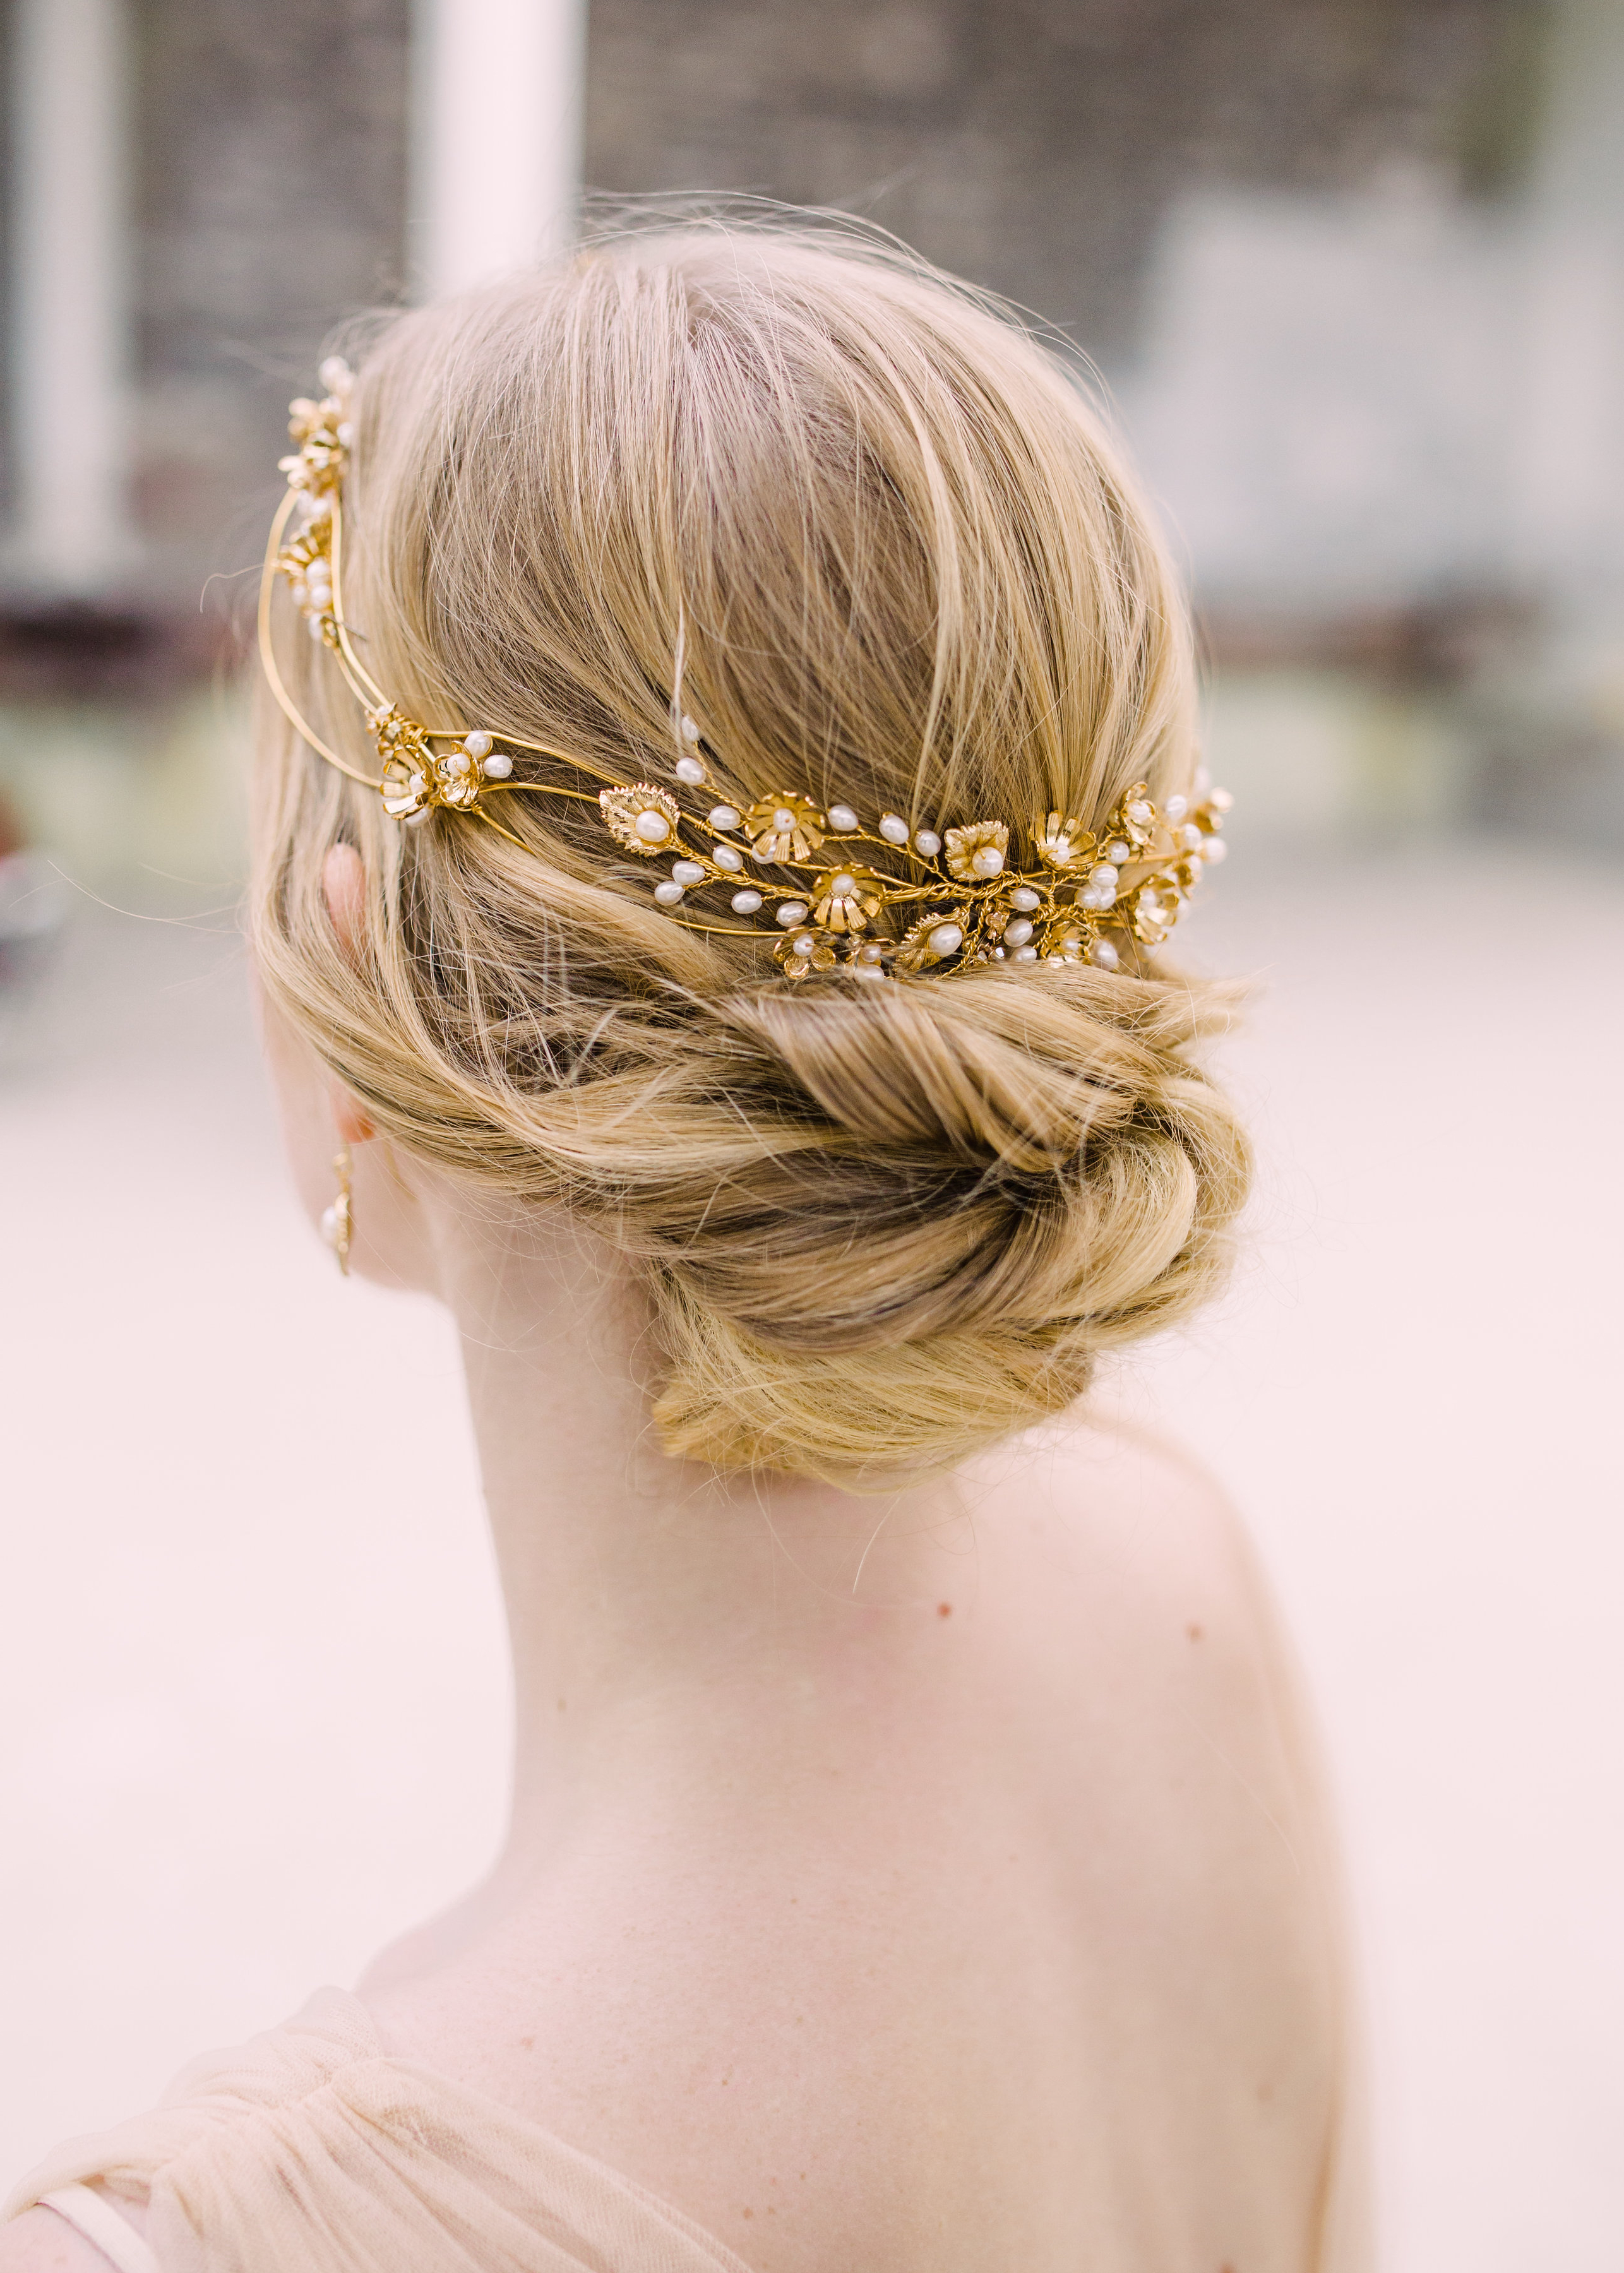 Well Liked Wild Waves Bridal Hairstyles With Bridal Hair Accessories: Accessorise Your Wedding Hairstyle – Hair (View 20 of 20)